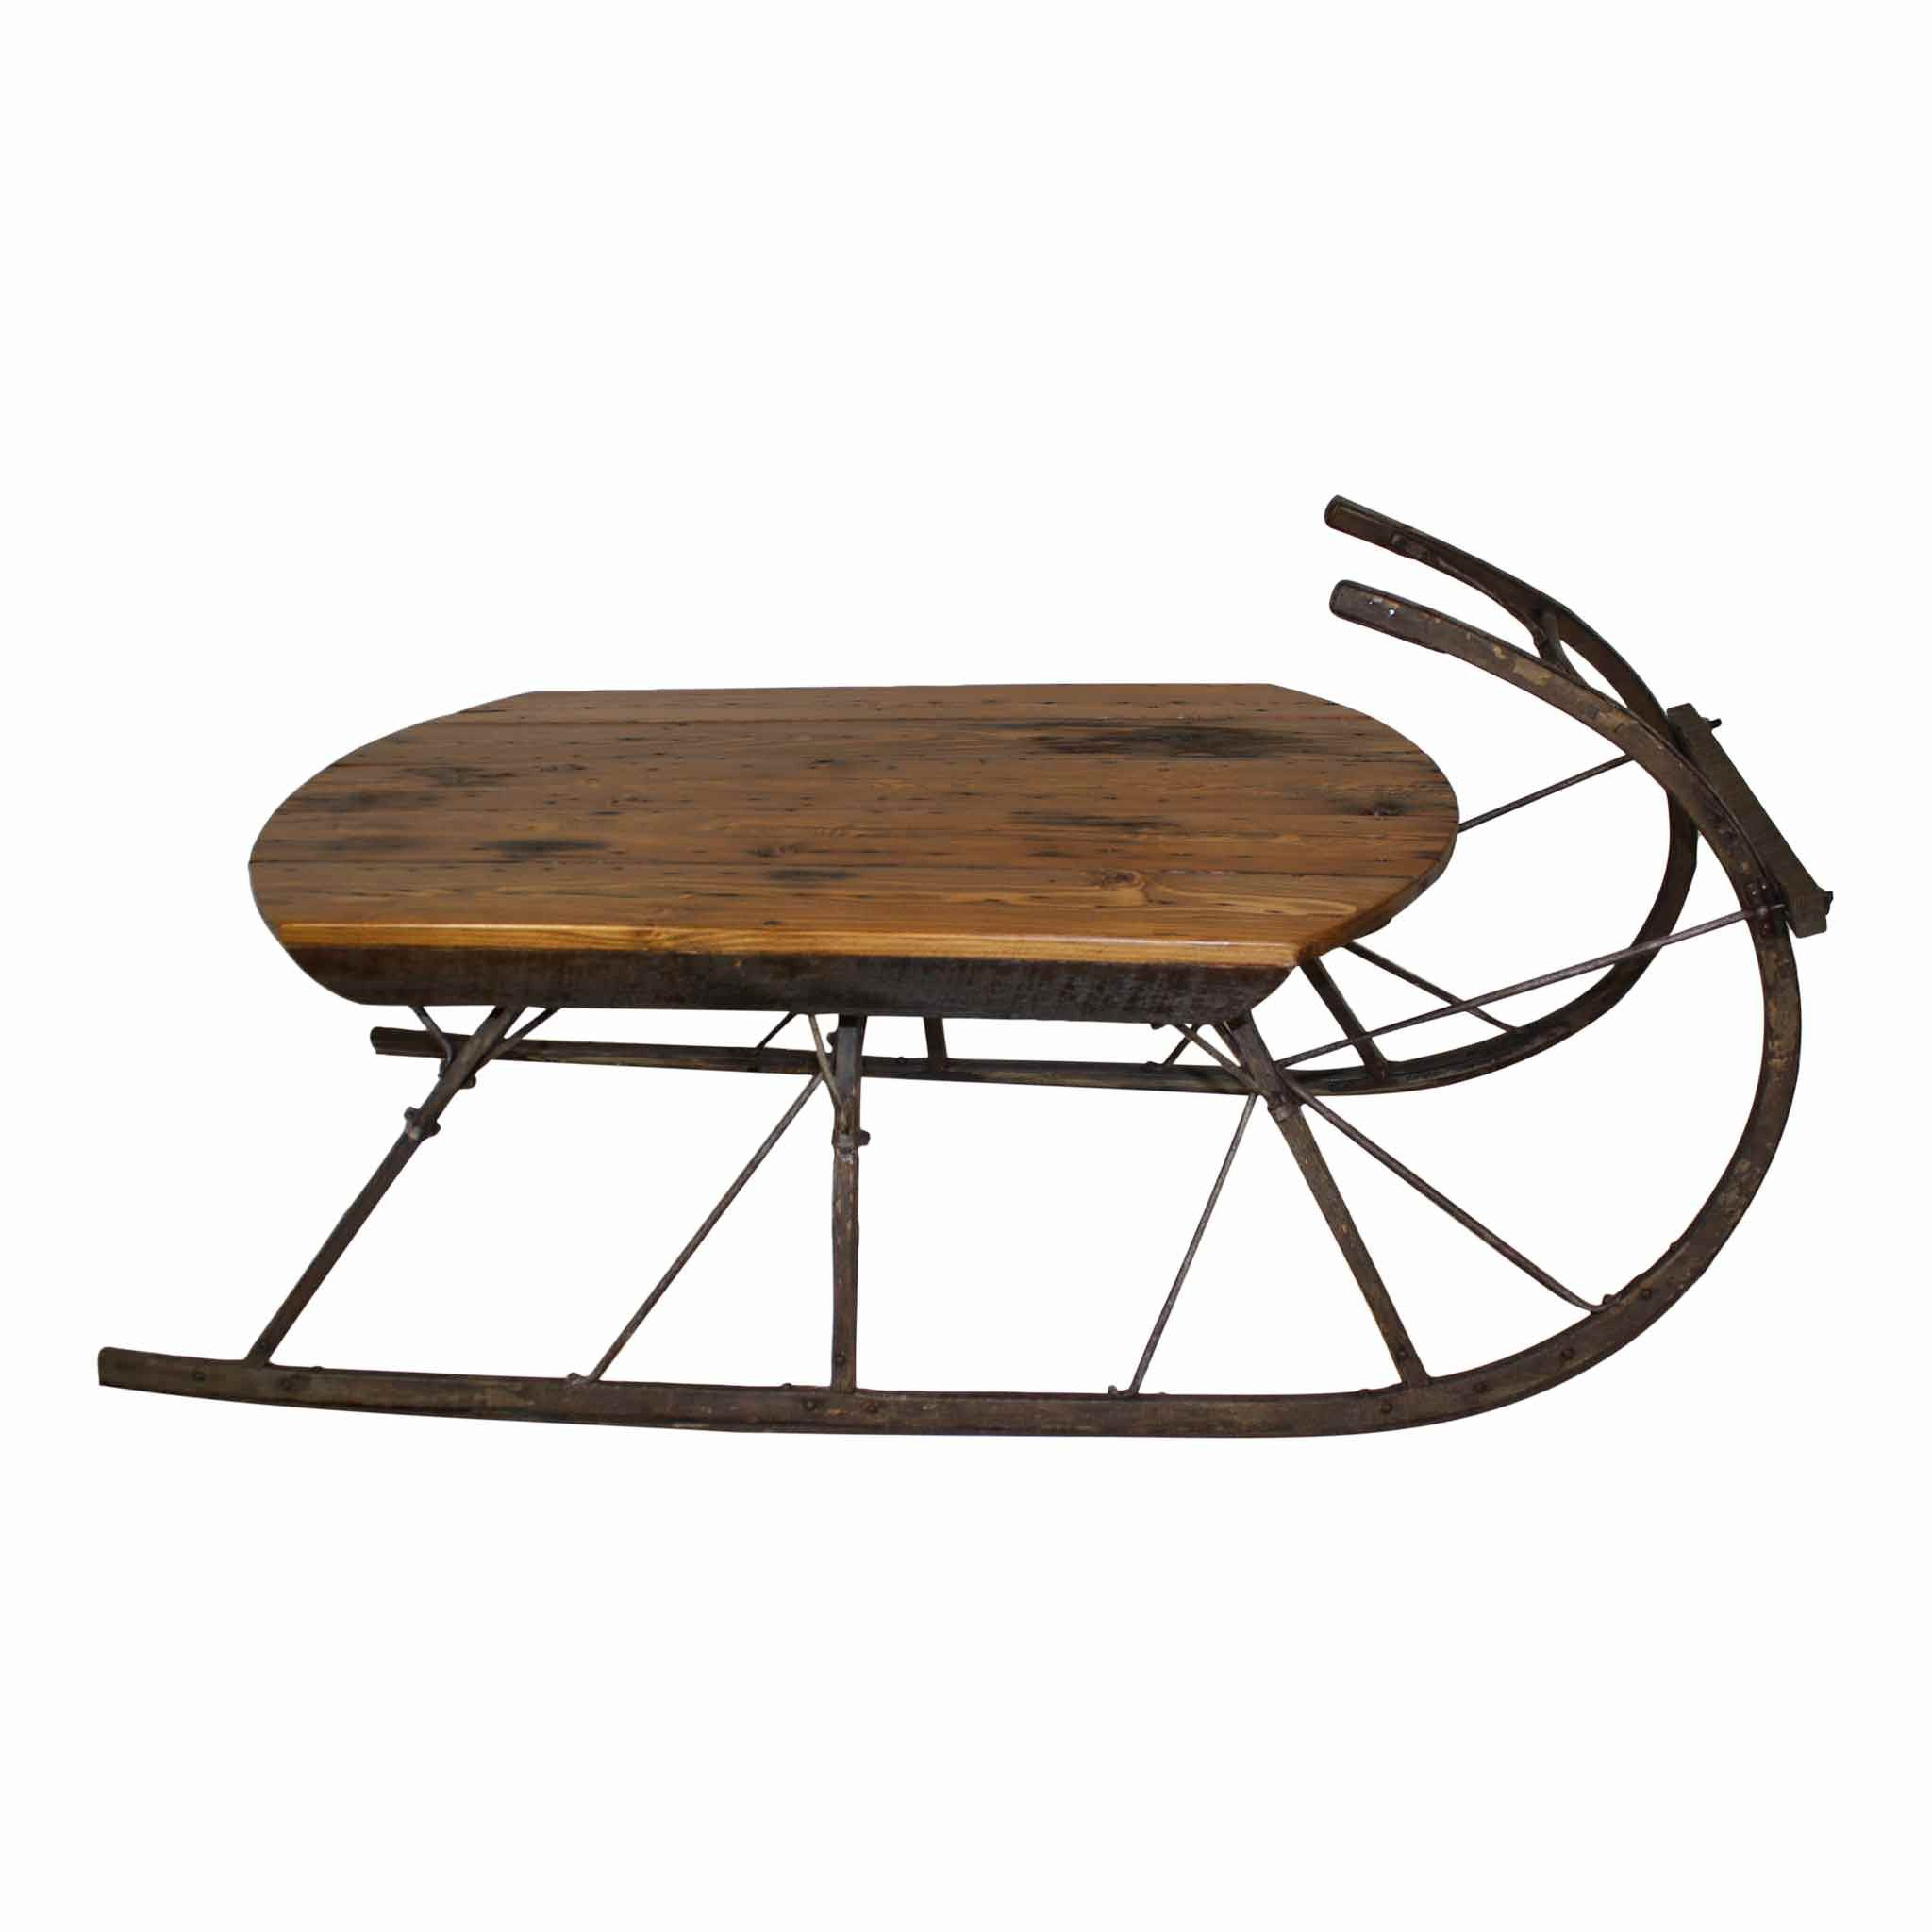 Sleigh coffee table reclaimed barn wood coffee and barn wood antique sleigh runners and reclaimed barn wood were used to create this lovely sleigh coffee table geotapseo Images